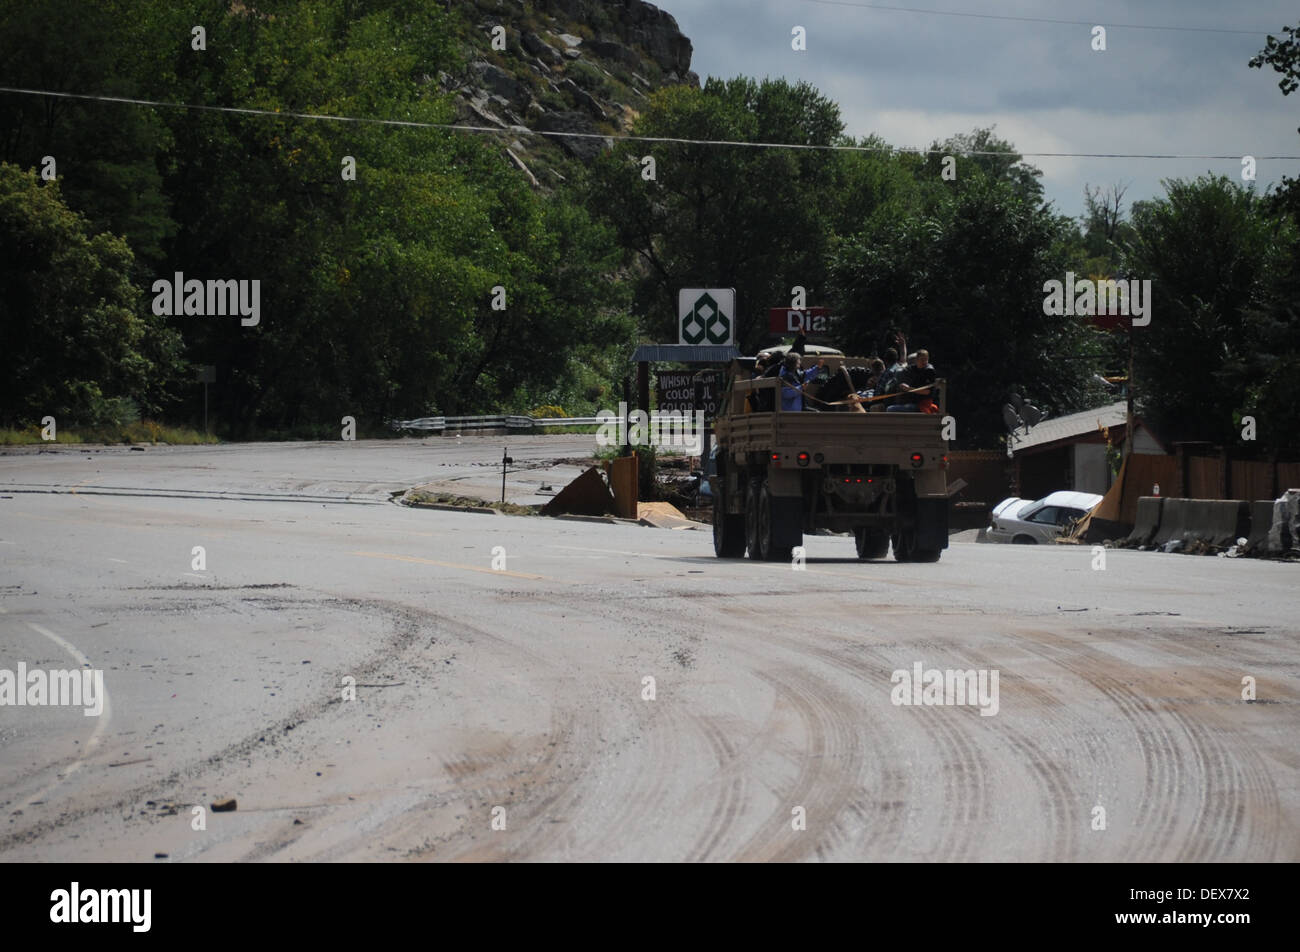 Colorado National Guardsmen assist Boulder County authorities transport evacuated residents of Lyons, Colo., to Longmont, Colo. - Stock Image